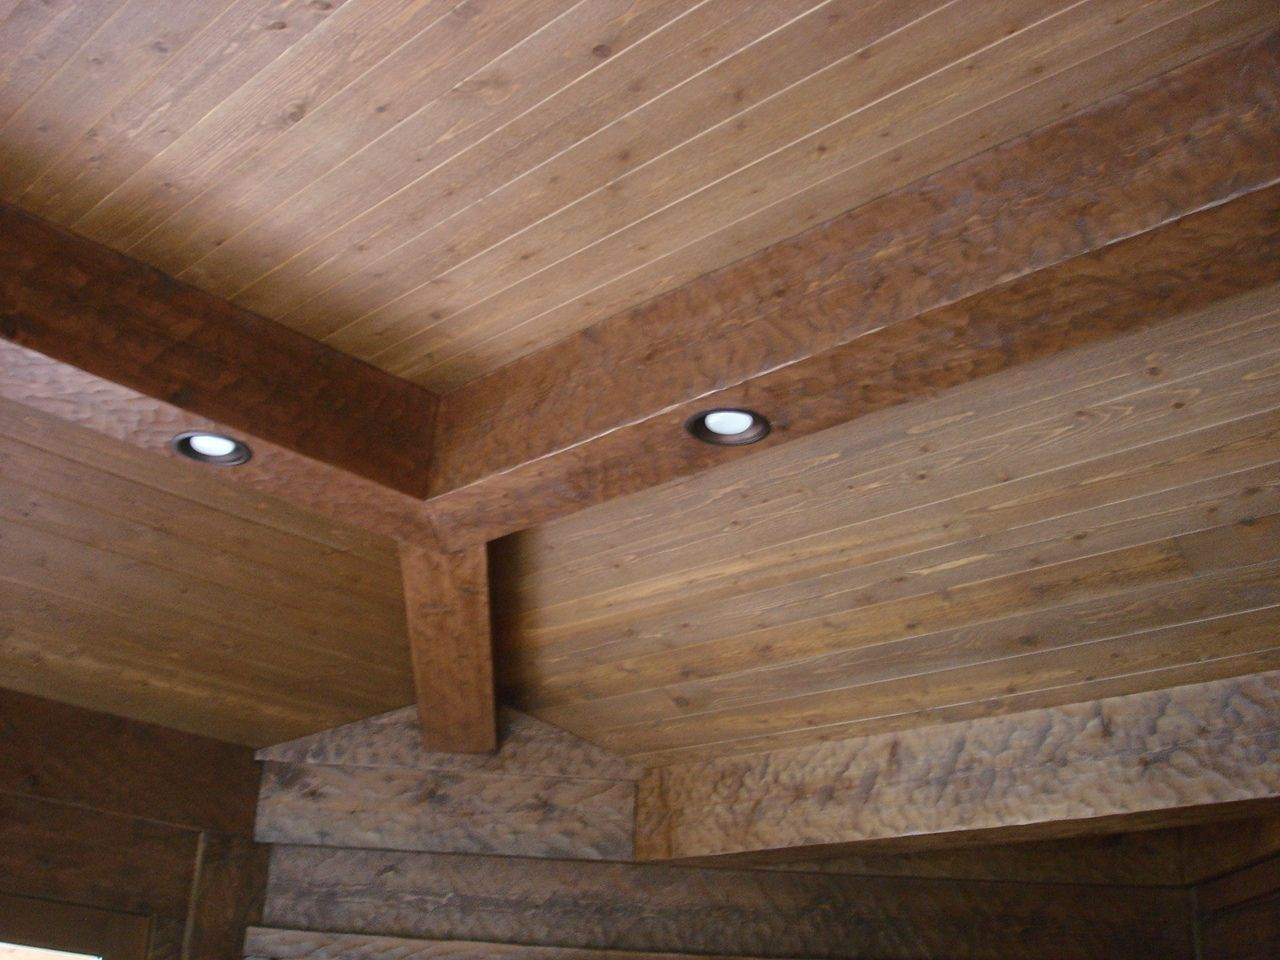 Tight Knot Cedar Standard V Joint Wirebrushed Face Weathered Endura Aqua Rustic Elegance Rustic Paneling